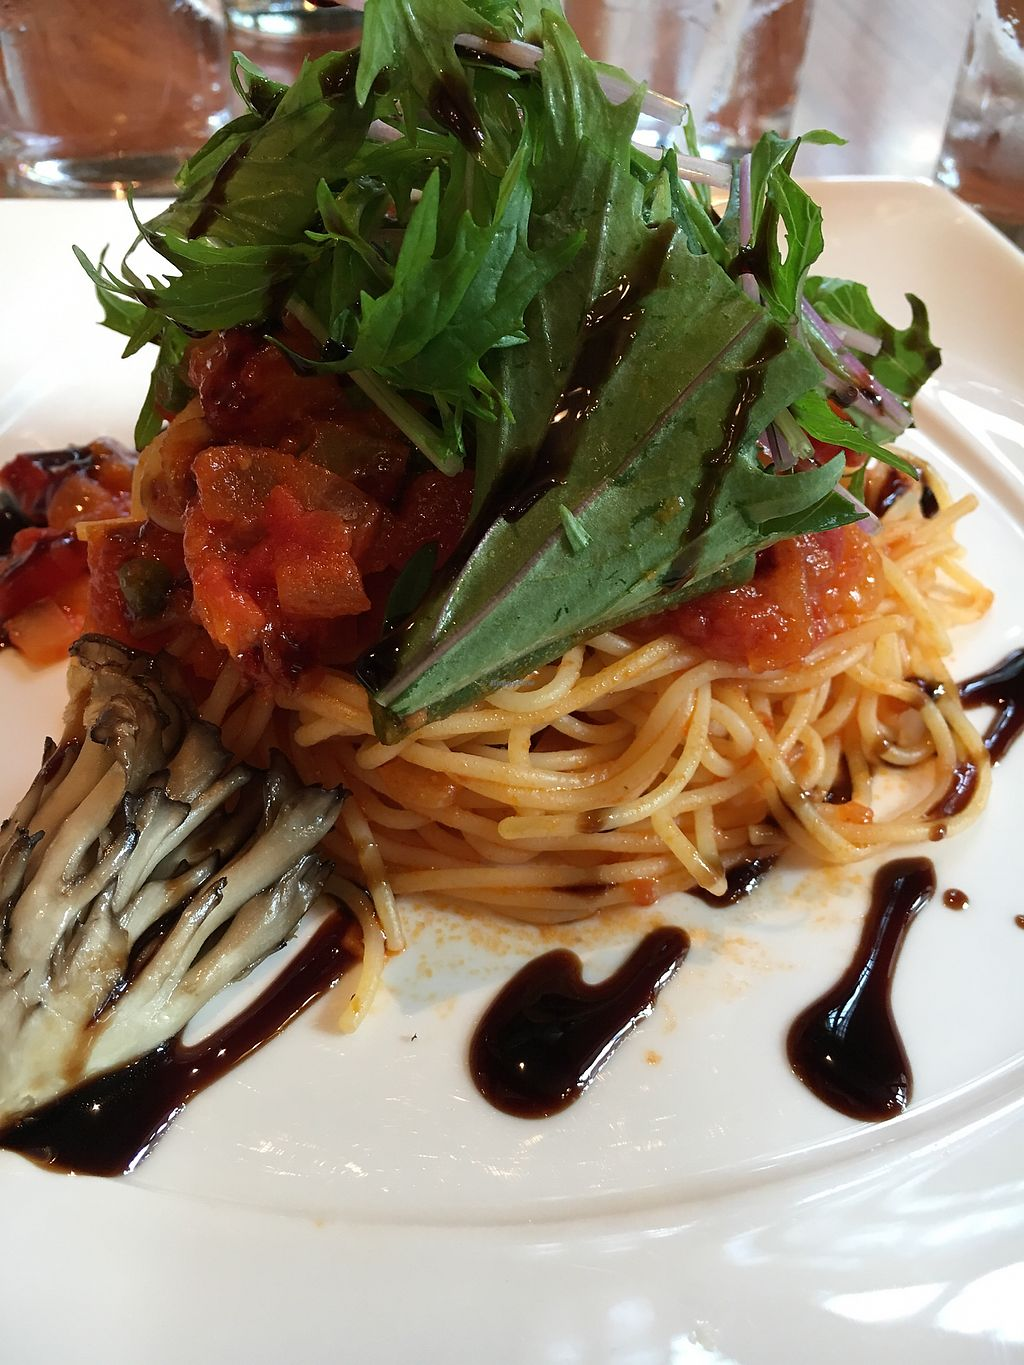 """Photo of Disneyland - Eastside Cafe  by <a href=""""/members/profile/VeganBec"""">VeganBec</a> <br/>Vegan Spaghetti <br/> April 12, 2018  - <a href='/contact/abuse/image/90978/384510'>Report</a>"""